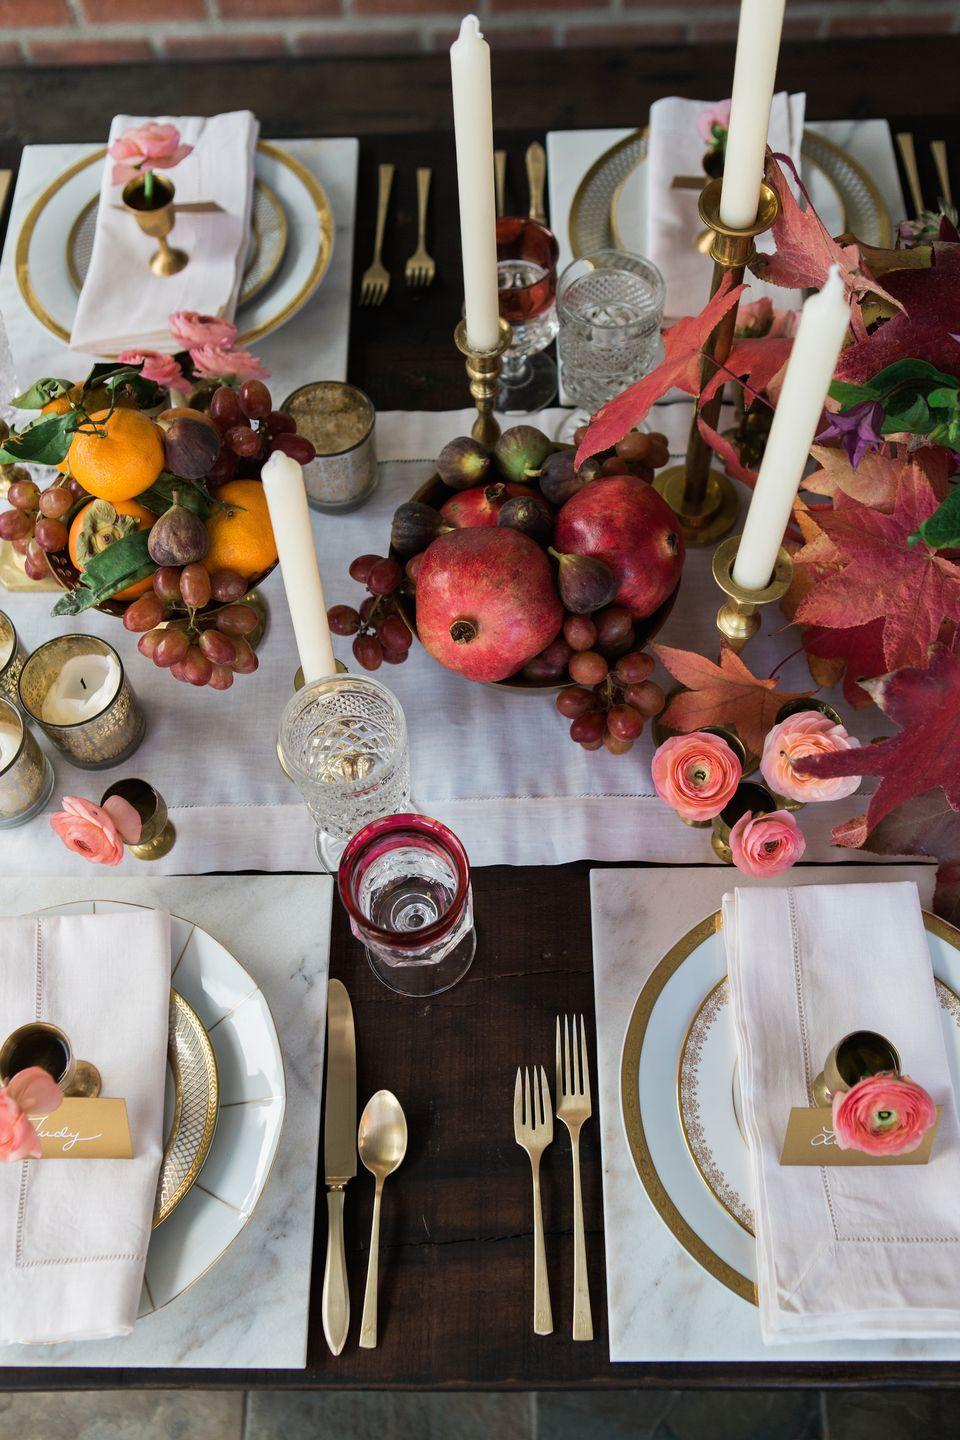 """<p>At a <a href=""""https://www.elledecor.com/life-culture/entertaining/g3396/thanksgiving-hosting-tips-from-professionals/"""" rel=""""nofollow noopener"""" target=""""_blank"""" data-ylk=""""slk:fall dinner"""" class=""""link rapid-noclick-resp"""">fall dinner</a> inspired by childhood memories of playing in the leaves and sharing holiday dinner, <a href=""""http://www.twinkandsis.com/blog/a-thanksgiving-dinner-inspired-by-our-childhood?rq=Thanksgiving"""" rel=""""nofollow noopener"""" target=""""_blank"""" data-ylk=""""slk:Twink + Sis"""" class=""""link rapid-noclick-resp"""">Twink + Sis</a> filled their tablescape with an abundance of pomegranates, tangerines, figs and grapes, with colorful leaves and plenty of long, tapered candles throughout.</p>"""